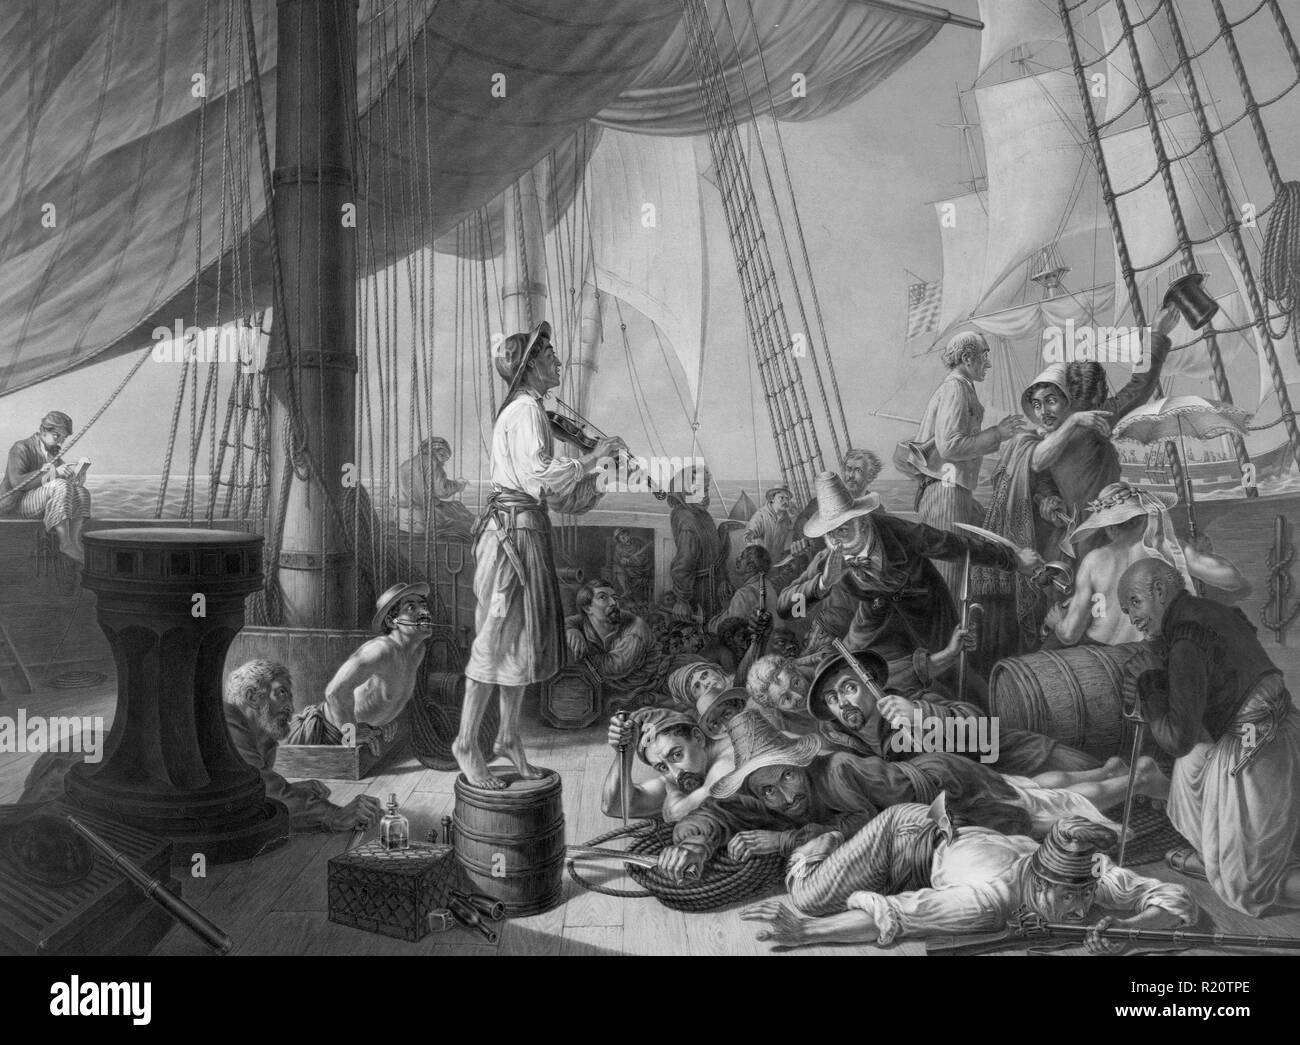 Black and white print depicting The pirates' ruse luring a merchantman in the olden days. Dated 1896 - Stock Image